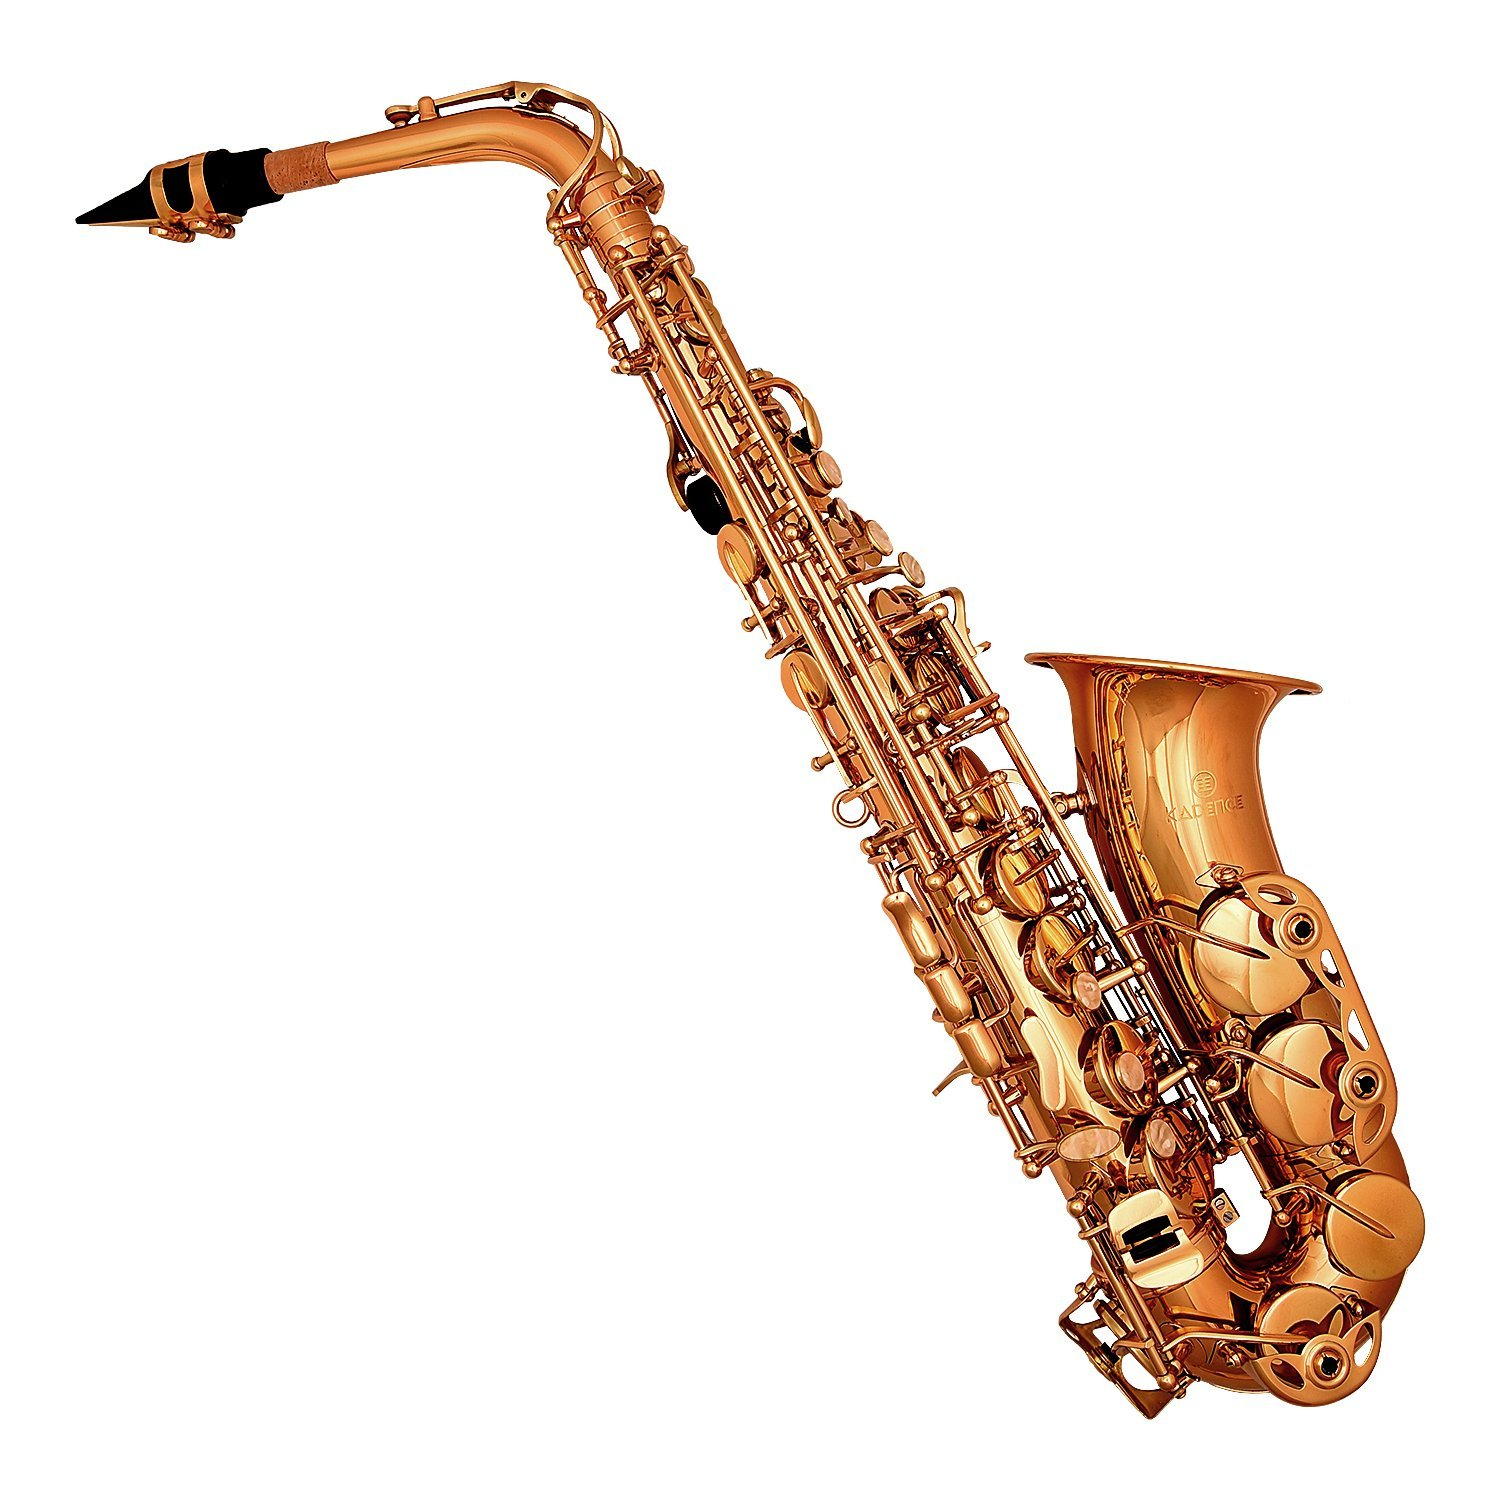 buy kadence kxb alto saxophone or check online price in india euphonycart. Black Bedroom Furniture Sets. Home Design Ideas